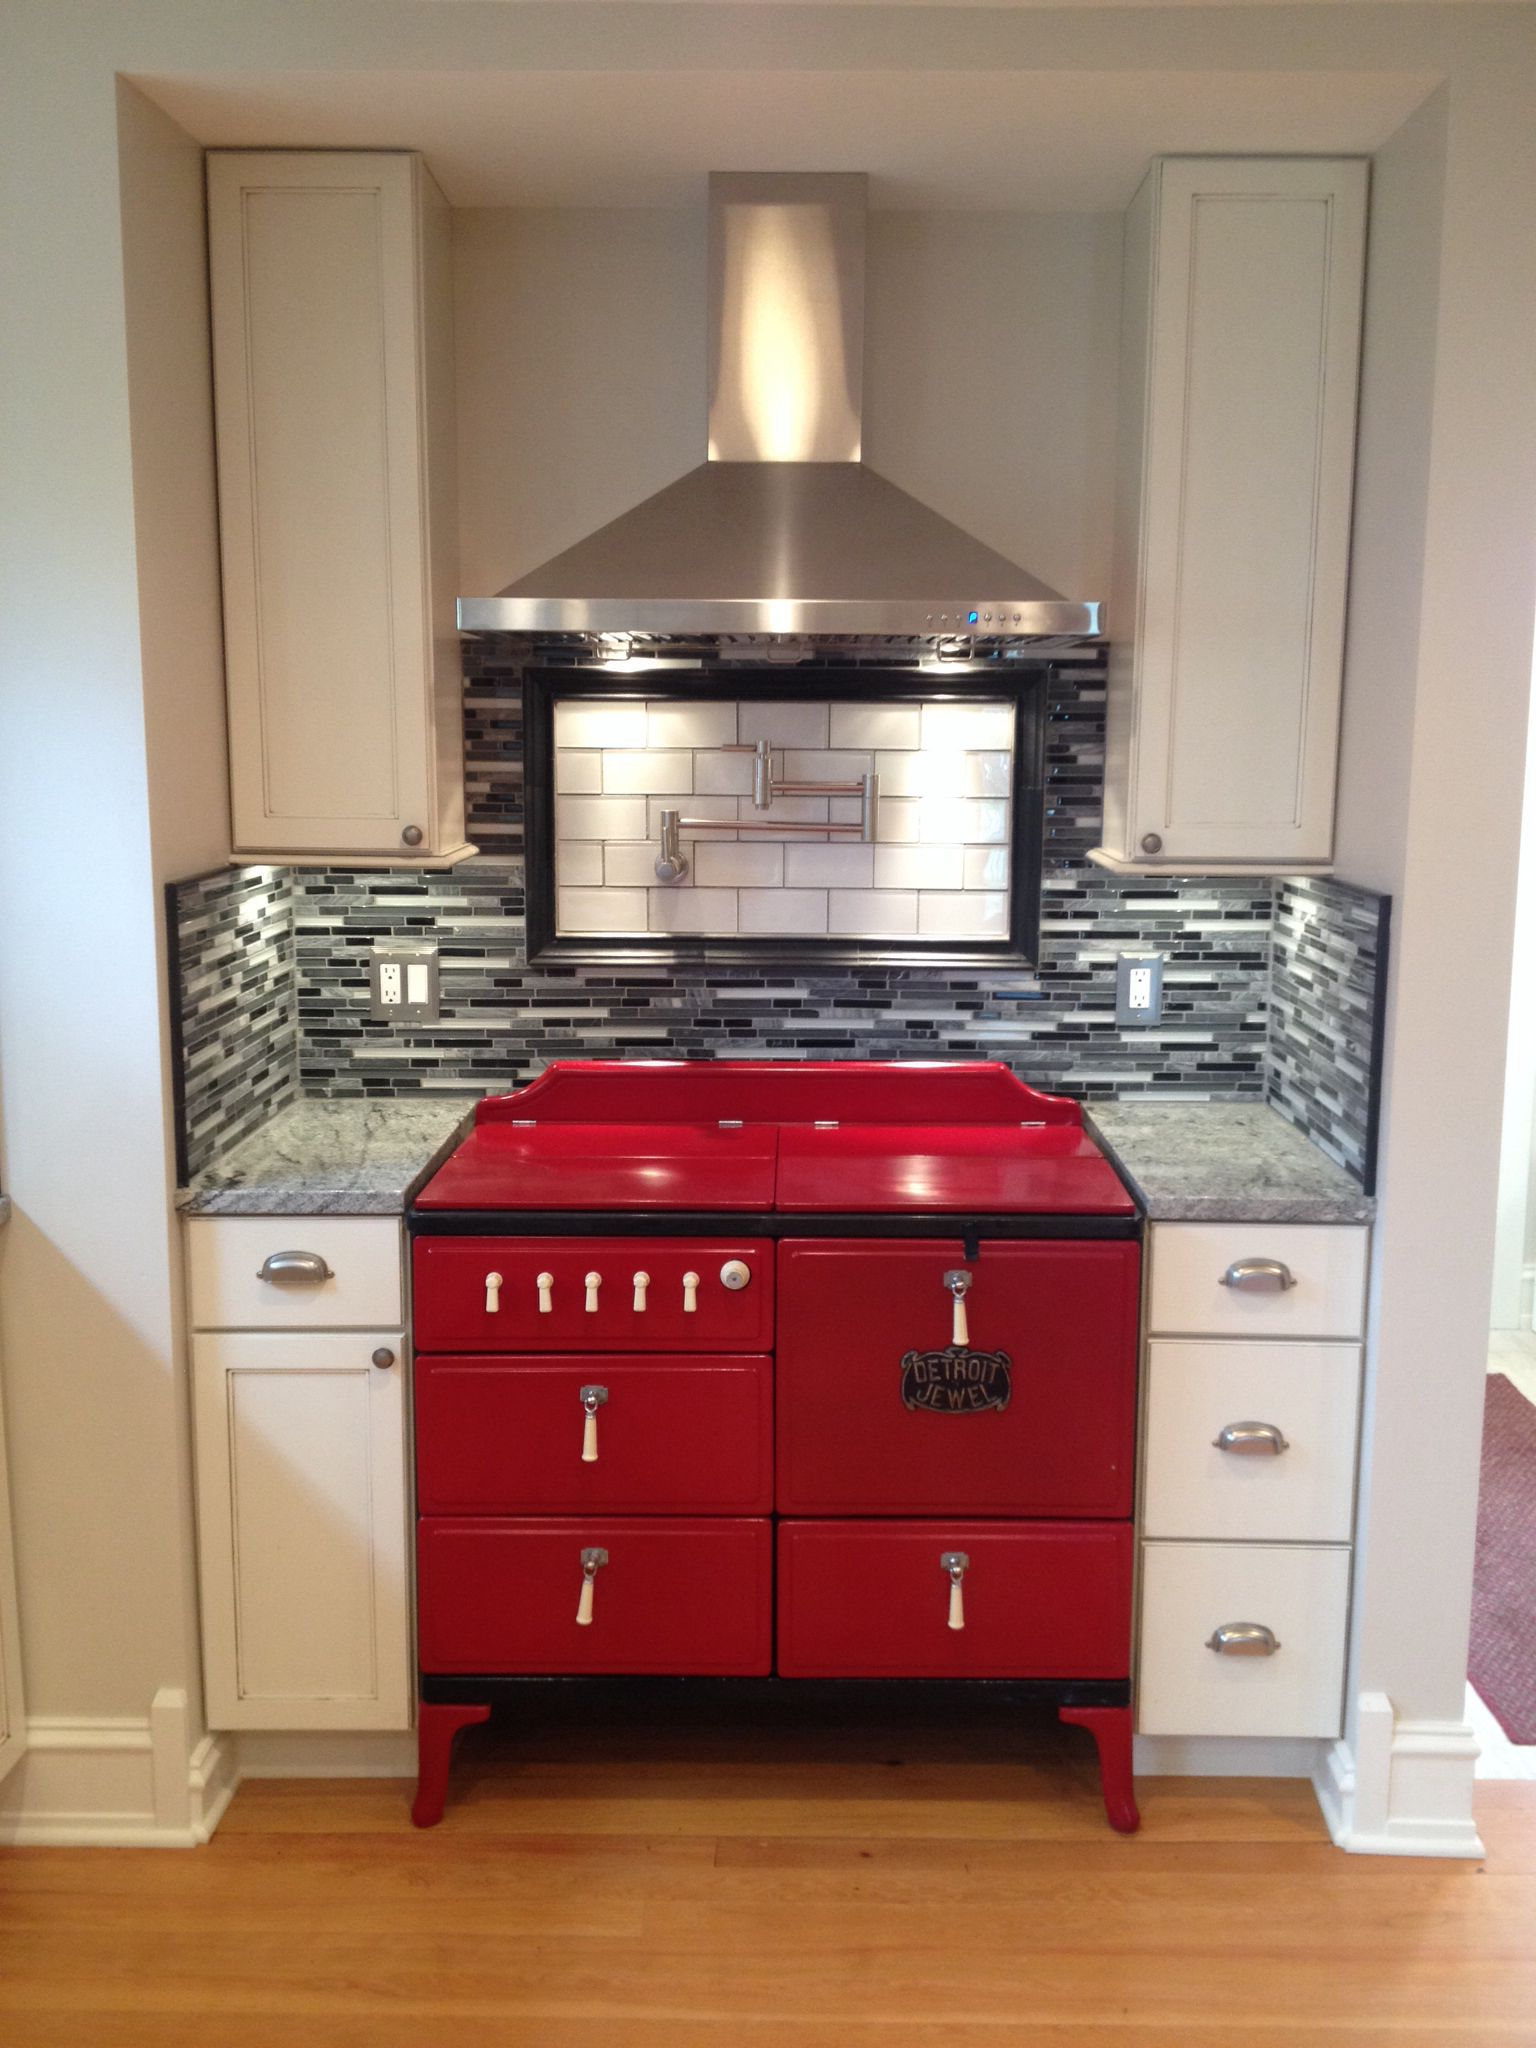 Detroit Jewel vintage stove restored and RED! Antique